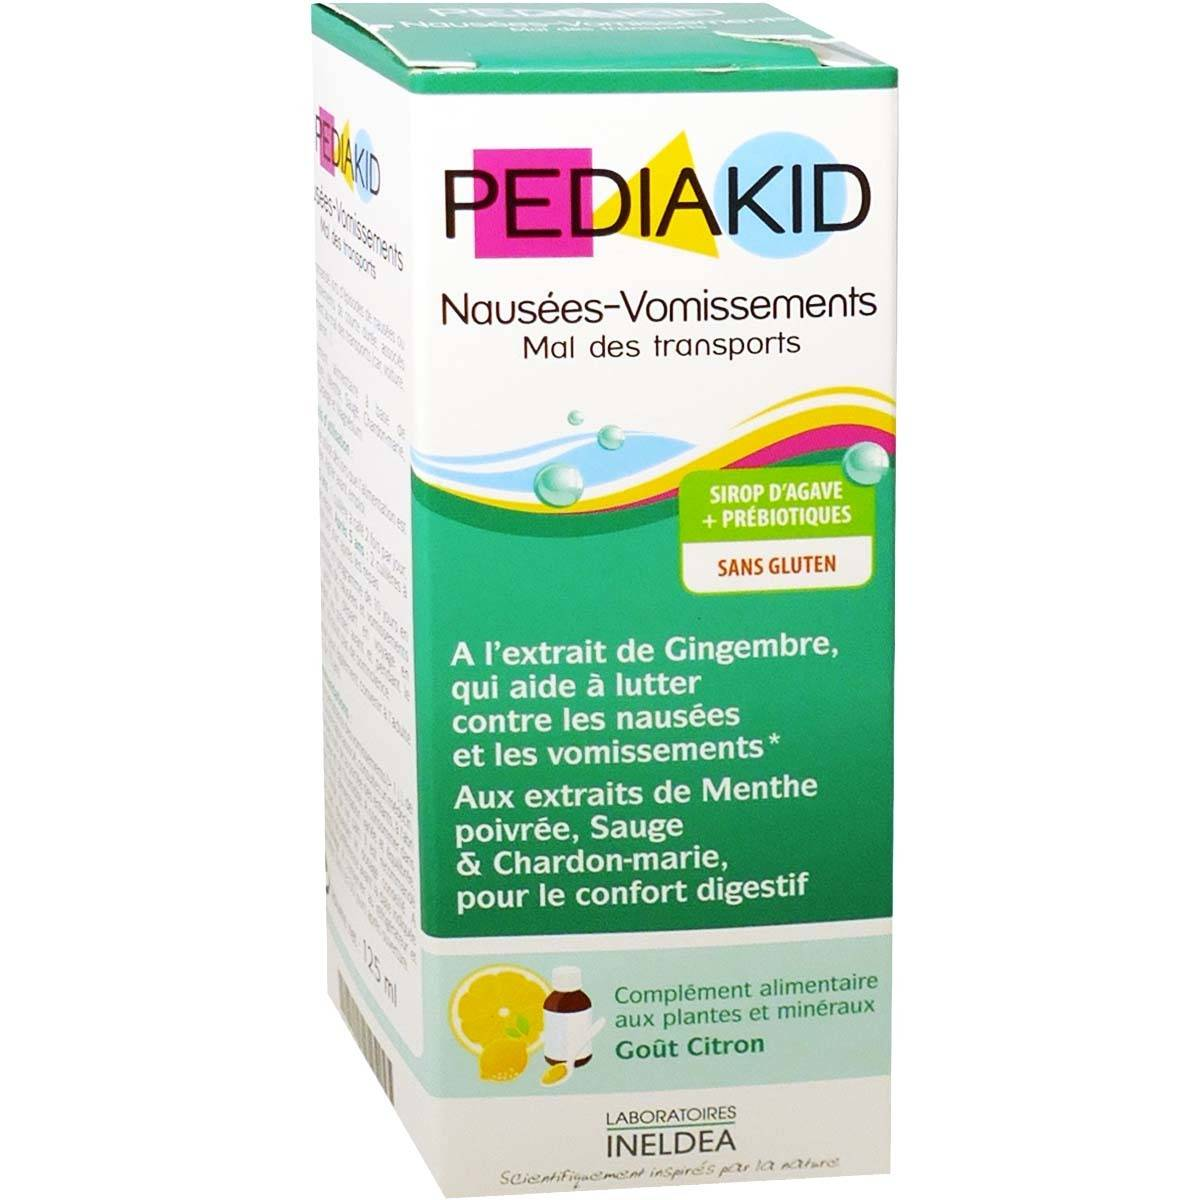 Pediakid nausees vomissements mal des transports 125 ml sirop d'agave